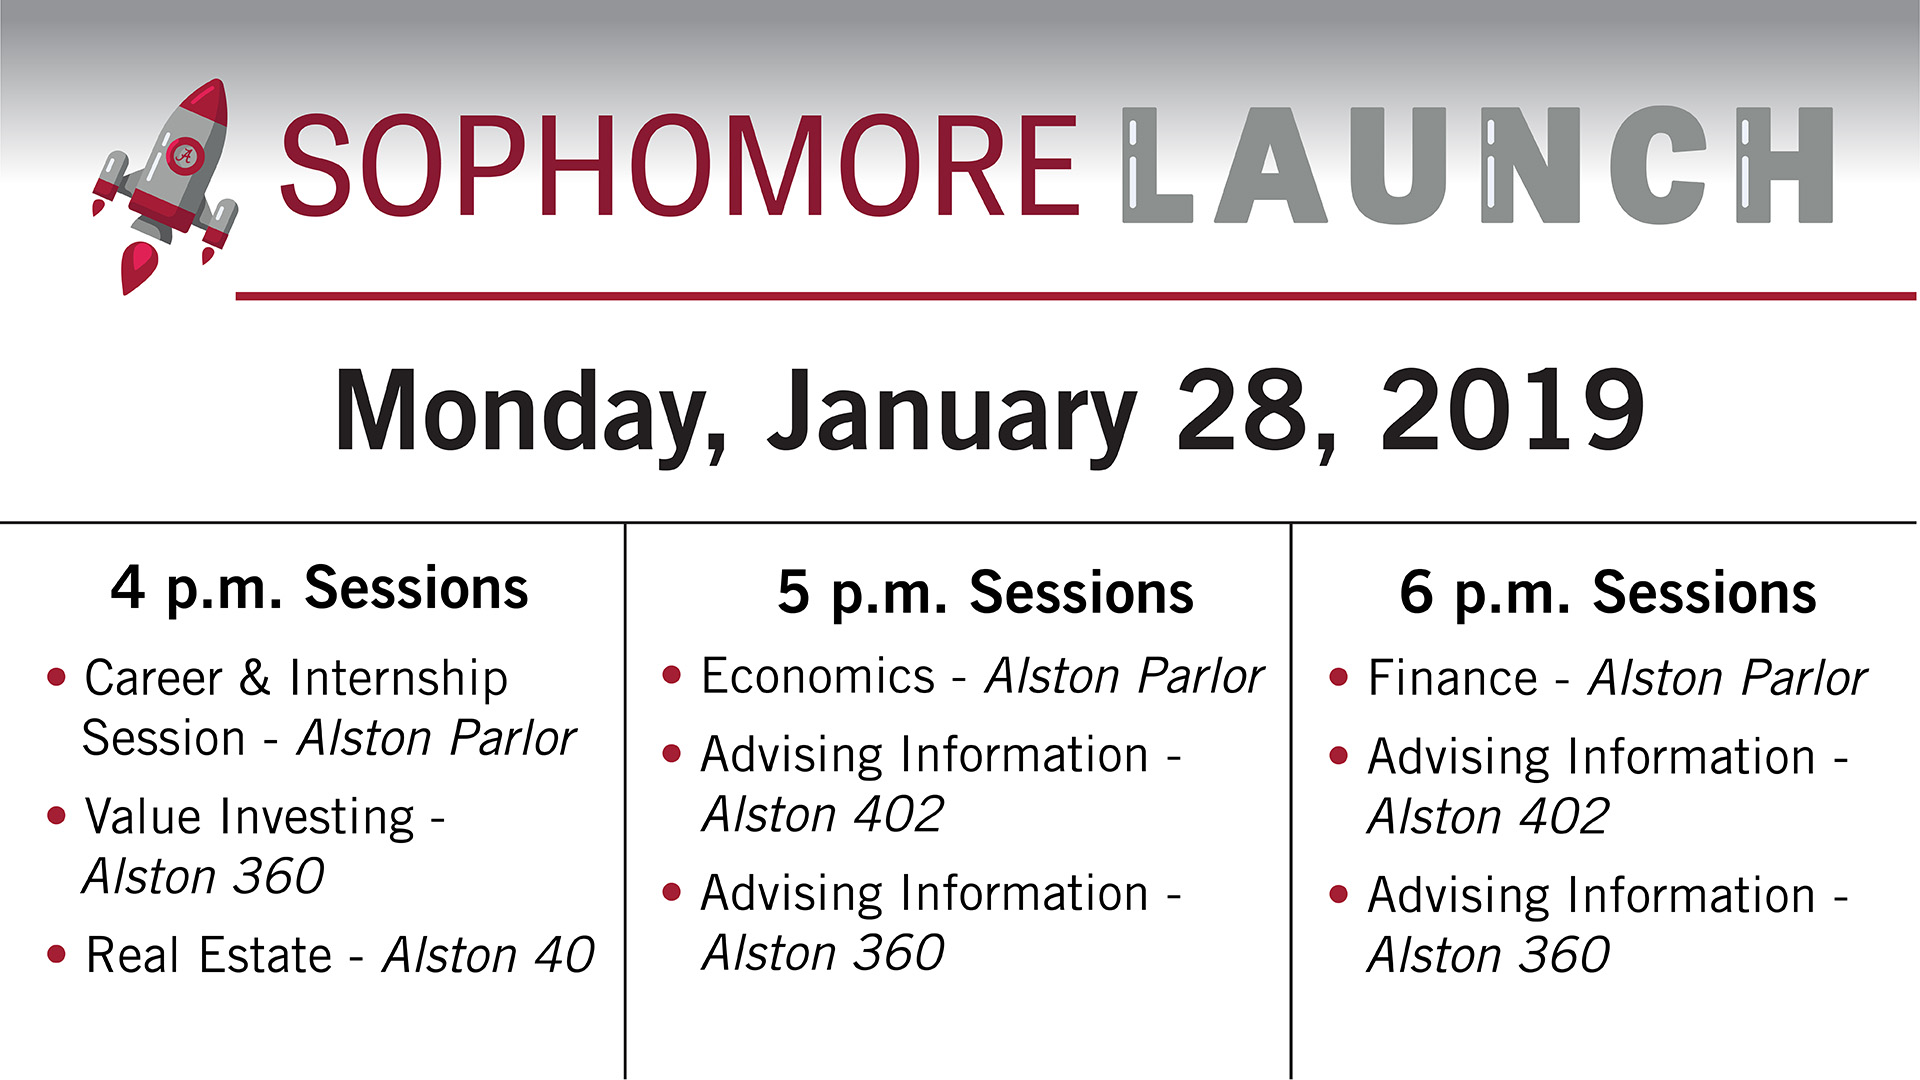 sophomore launch 2019 monday events